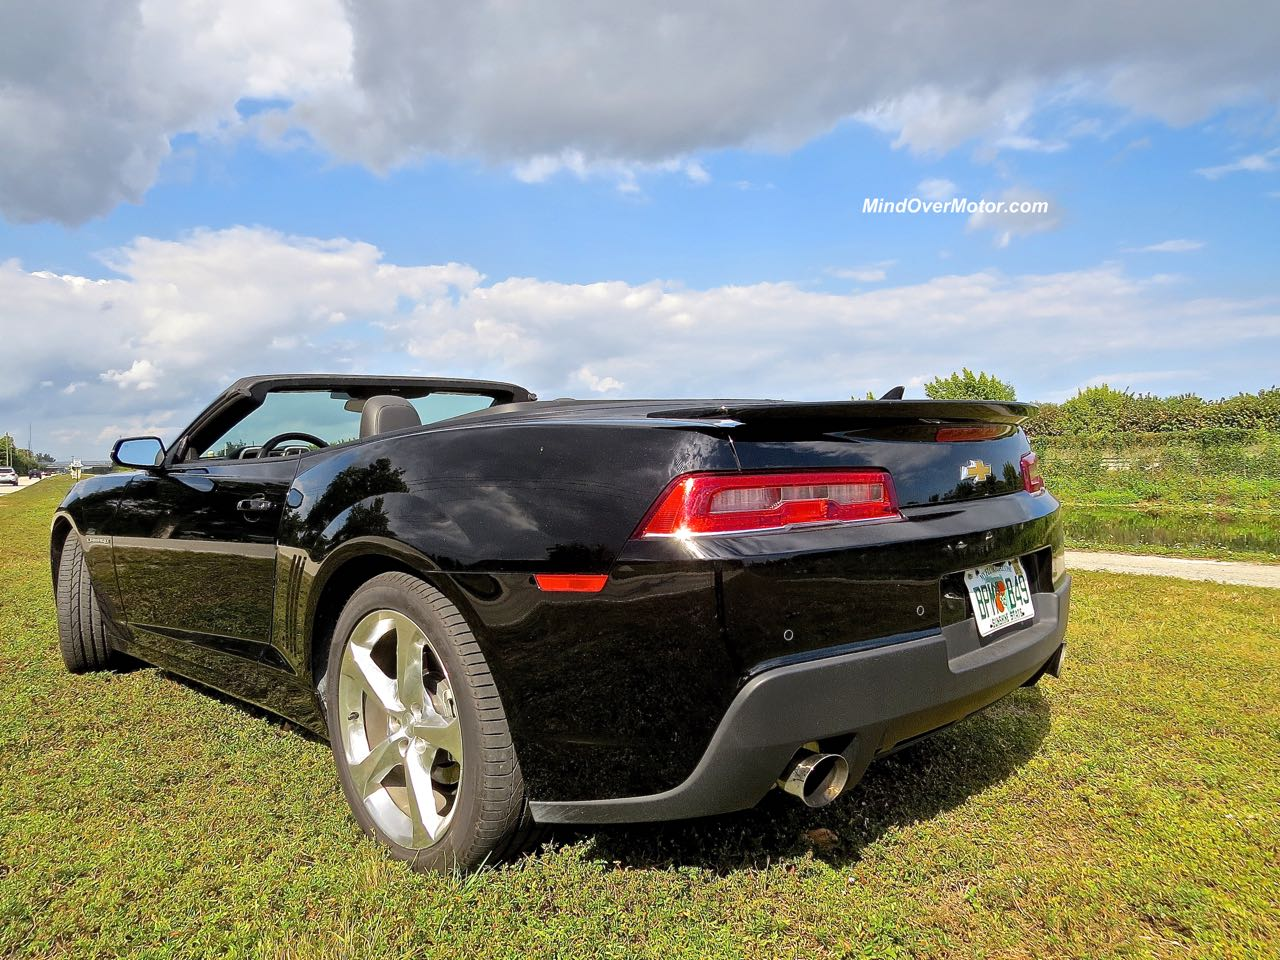 2015 Chevrolet Camaro Convertible Rear Angle Roadside 1